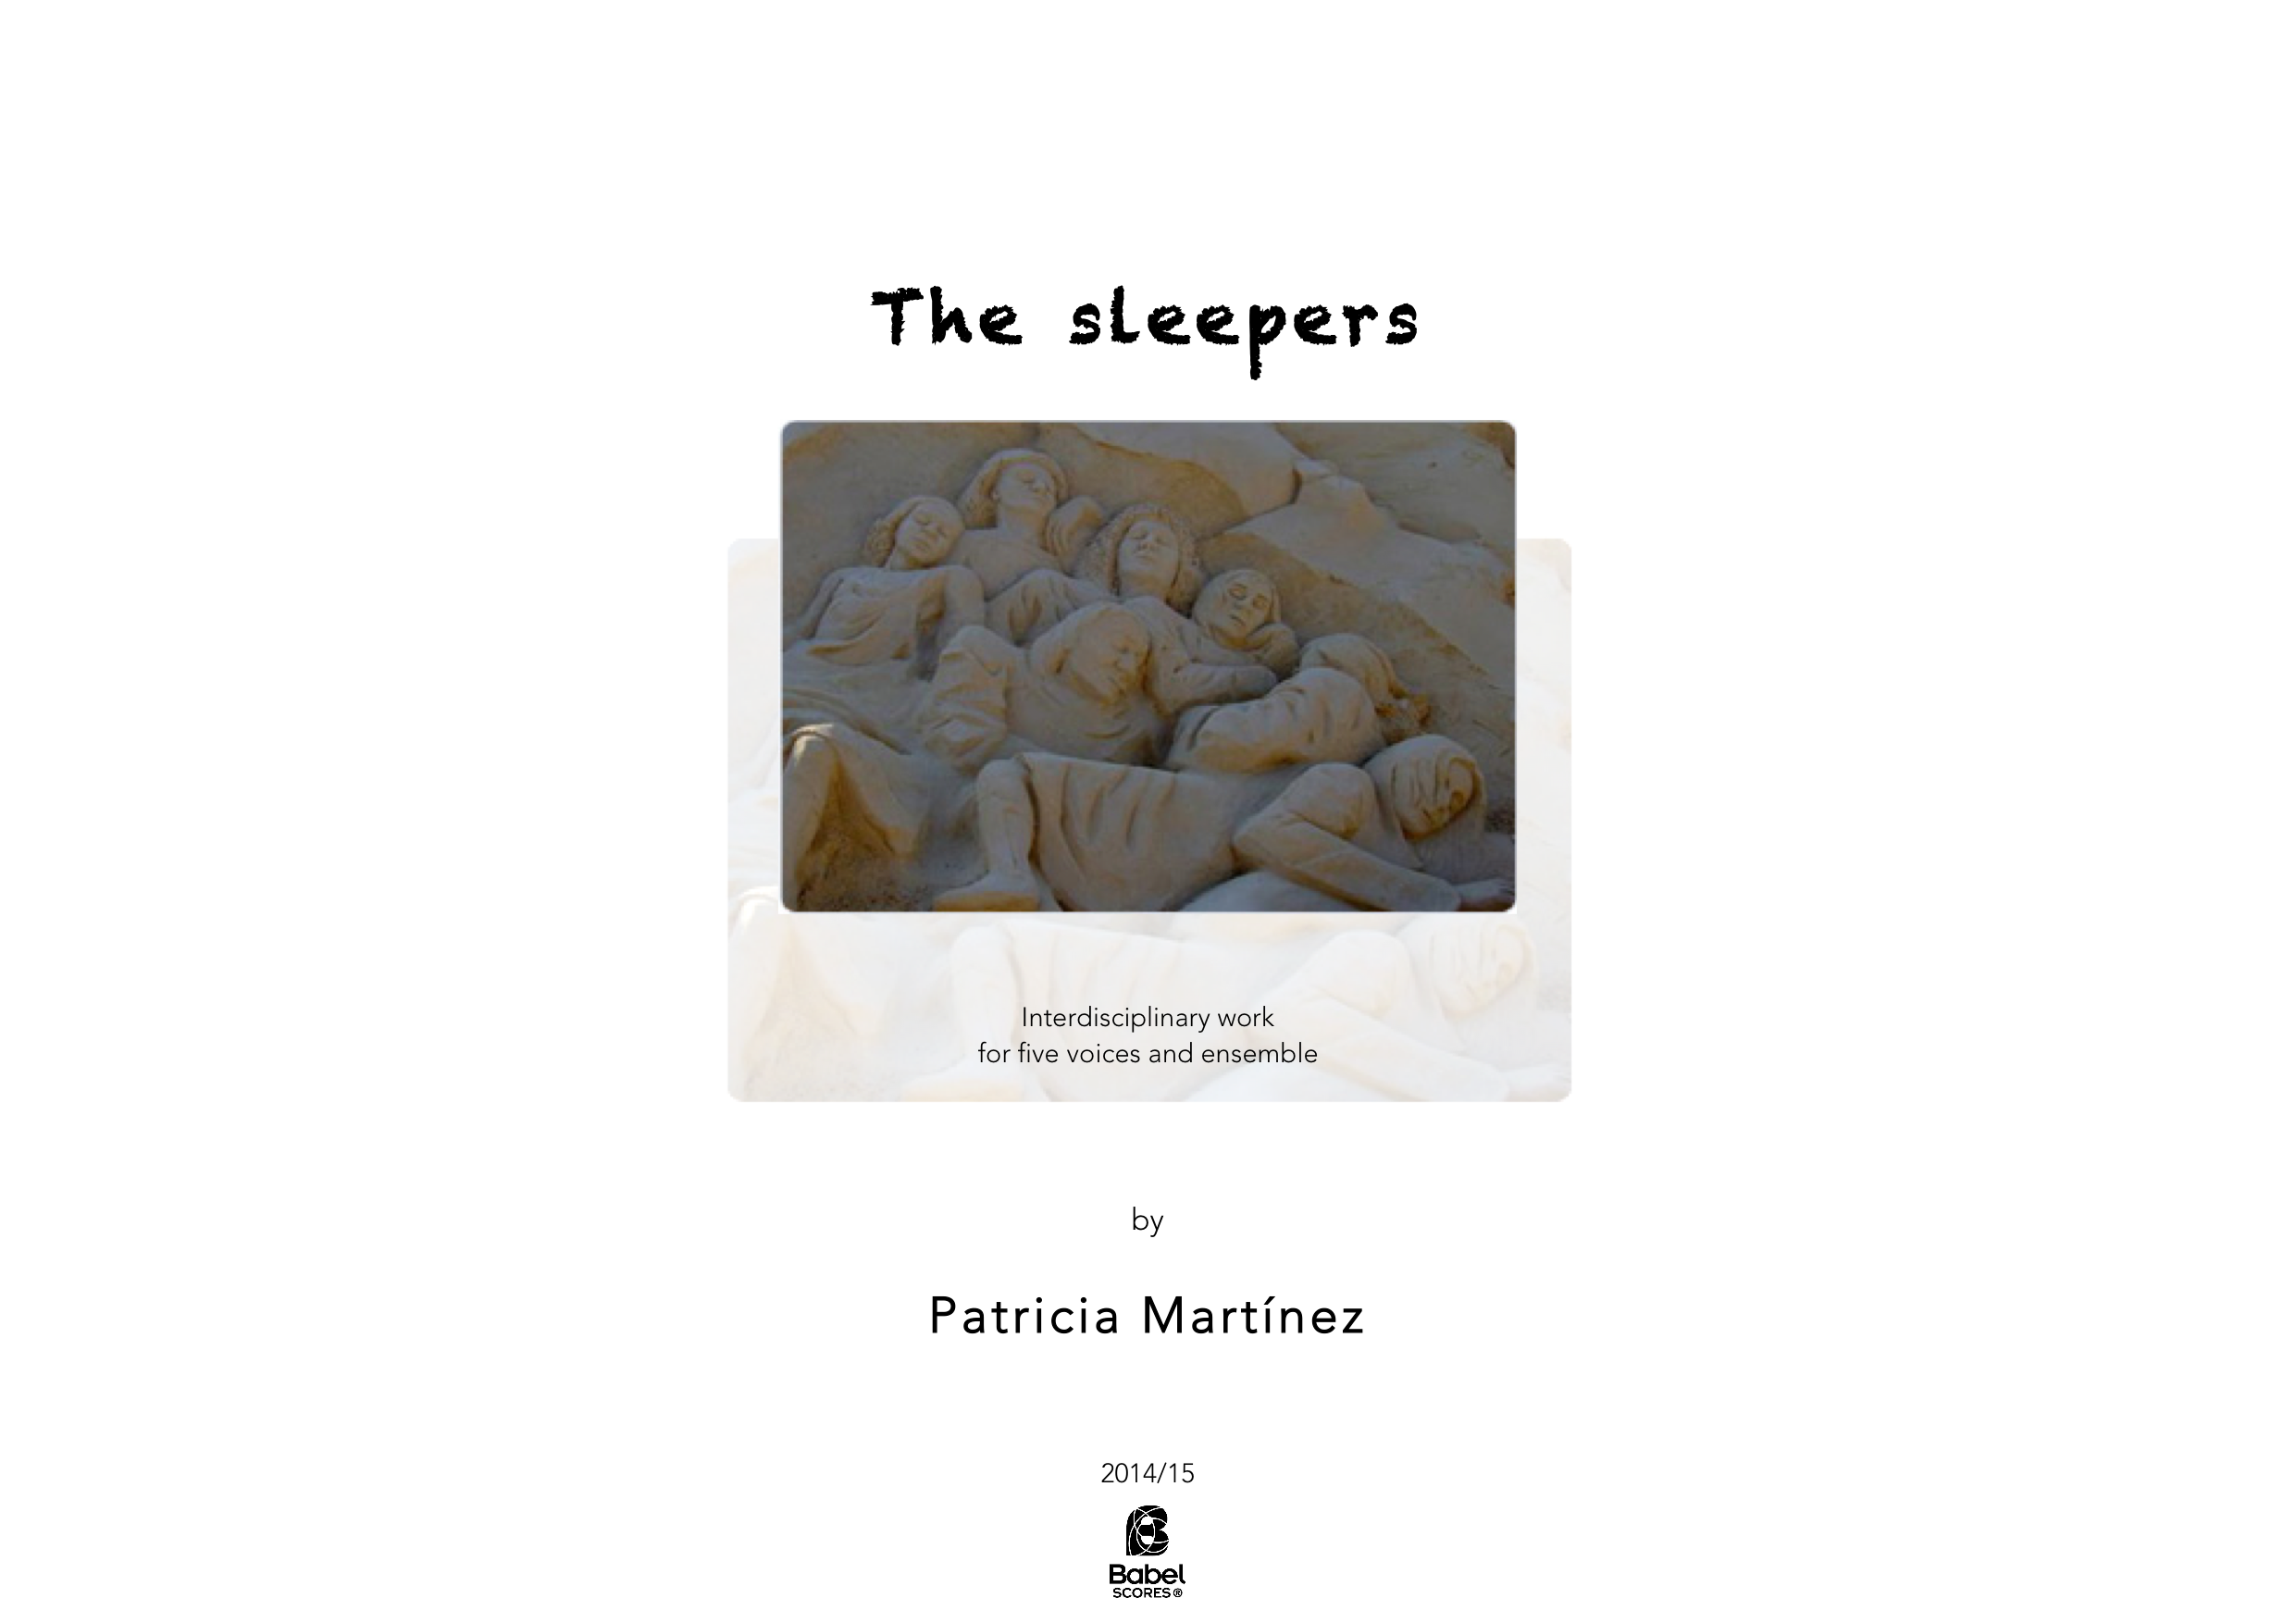 The sleepers A3 z 3 1 431